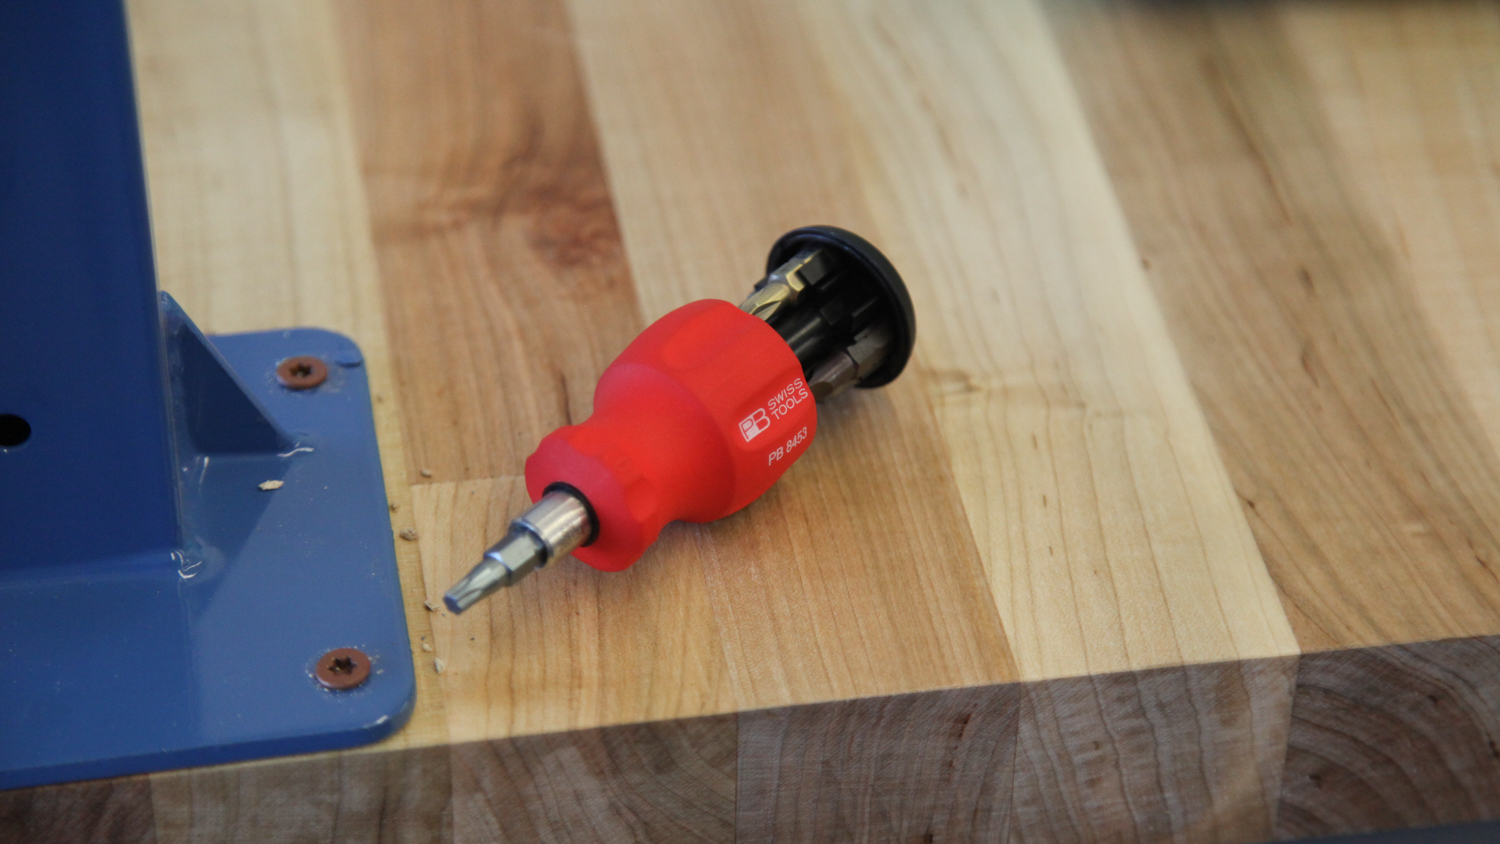 PB Swiss stubby multi-screwdriver - Little, but really well made.